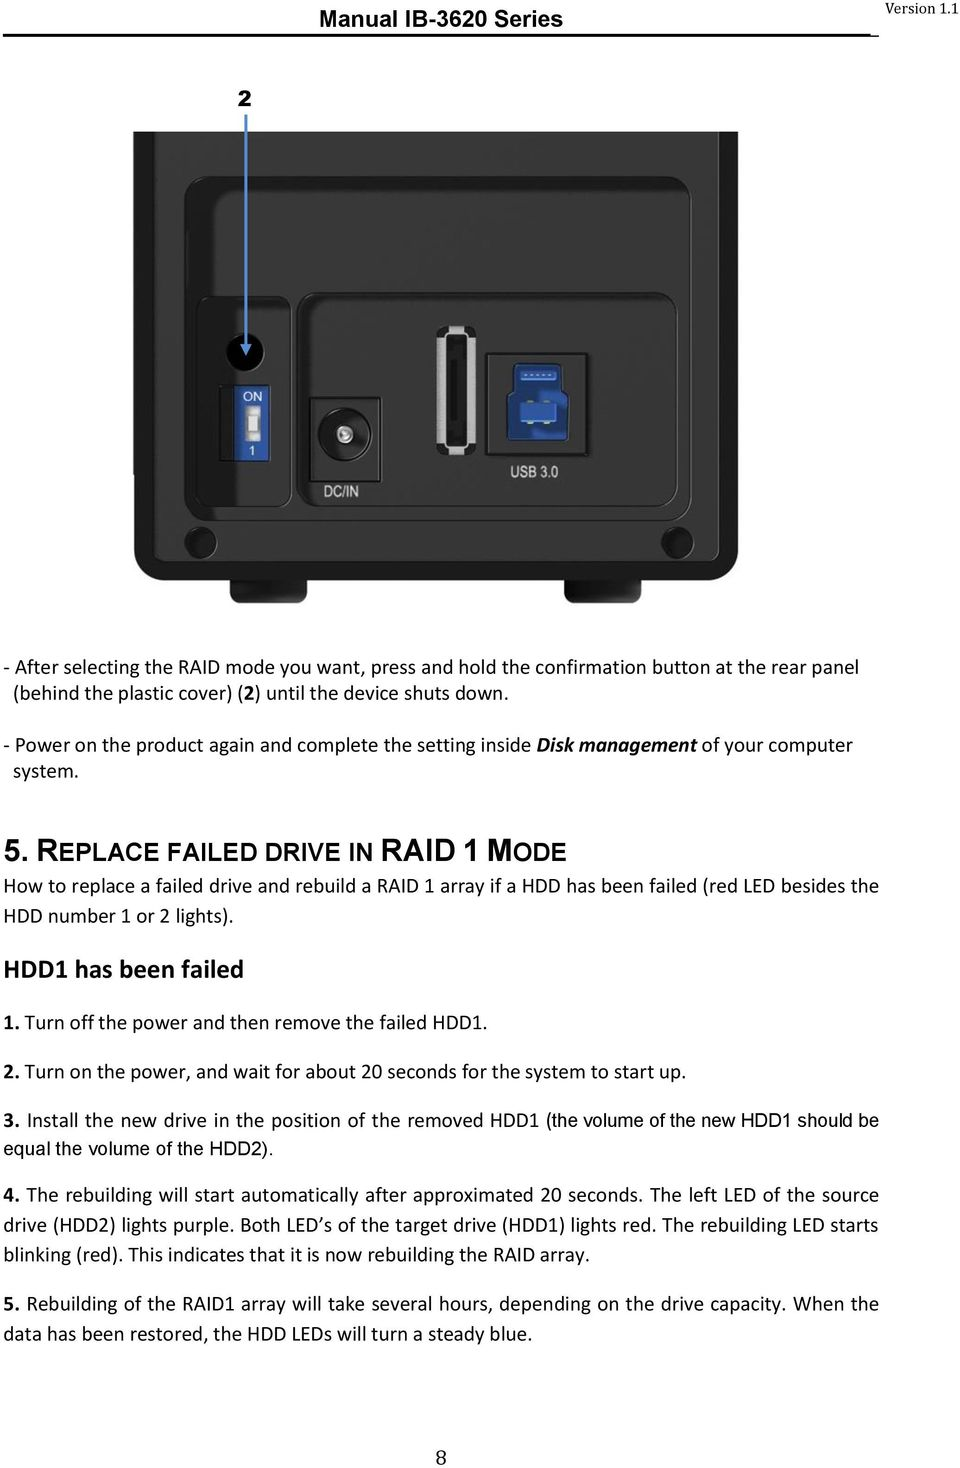 REPLACE FAILED DRIVE IN RAID 1 MODE How to replace a failed drive and rebuild a RAID 1 array if a HDD has been failed (red LED besides the HDD number 1 or 2 lights). HDD1 has been failed 1.